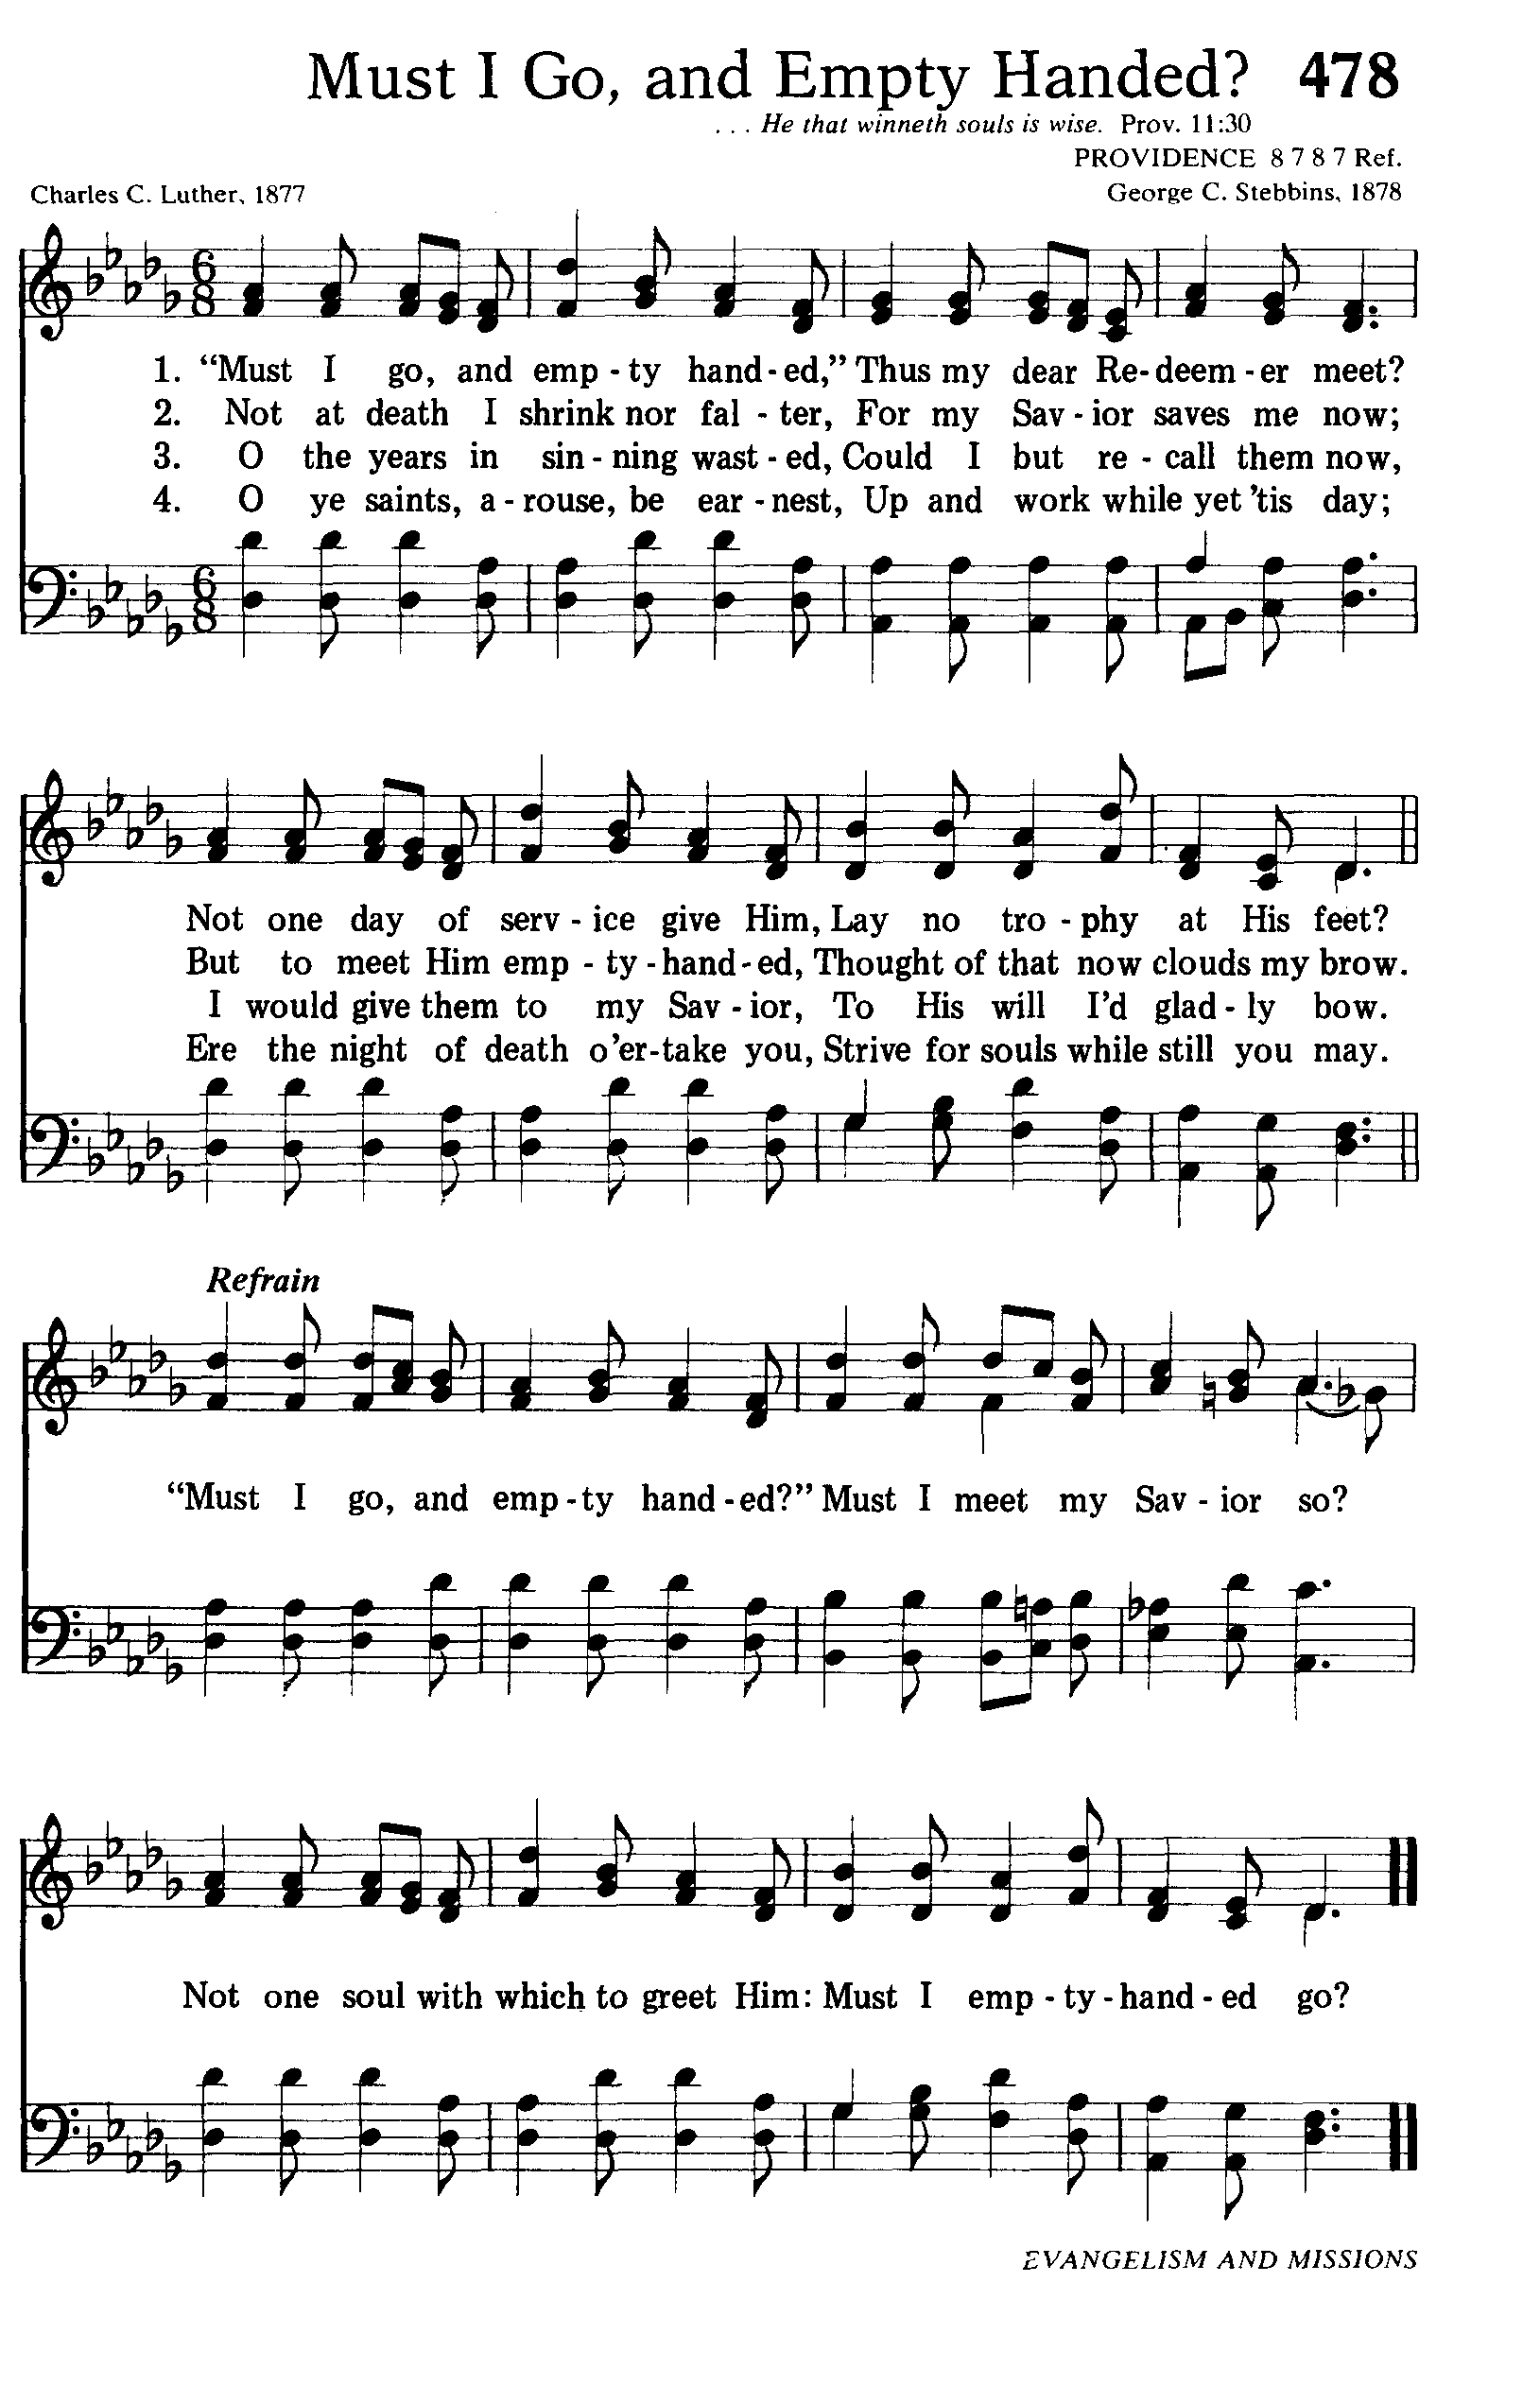 """Charles Carroll Luther wrote this hymn in 1877. I first heard this hymn while in high school when my late friend Ray Munsaka sung it in Tonga and the words and tune have never left my heart since then. My wife Enid does the Luhya version and I am content with the English version. The story behind this hymn is short but remarkable. It is a lovely hymn that speaks of our service for God. I have sung this hymn since I was young and it has always been a reminder that I should serve the Lord while I have breath. Charles Carroll Luther was a journalist and lay evangelist before being ordained as a Baptist minister in 1886. Though not a prolific composer, he authored this hymn in 1877 when he heard a Rev. A.G. Upham relate the story of a young man who was about to die. This young man had been a Christian for only one month. Though thankful to the Lord for granting him salvation during his final hour, he was nevertheless grieved that he'd had no opportunity to serve the Lord nor to share Him with others. He explained, """"I am not afraid to die; Jesus saves me now. But must I go empty handed?"""" Upon hearing this account, Luther wrote this hymn. Zokam, Zopau, Zolai for Zomi of Worldwide adventist and Christian believers, Tedim, Tiddim, Chin, Myanmar"""